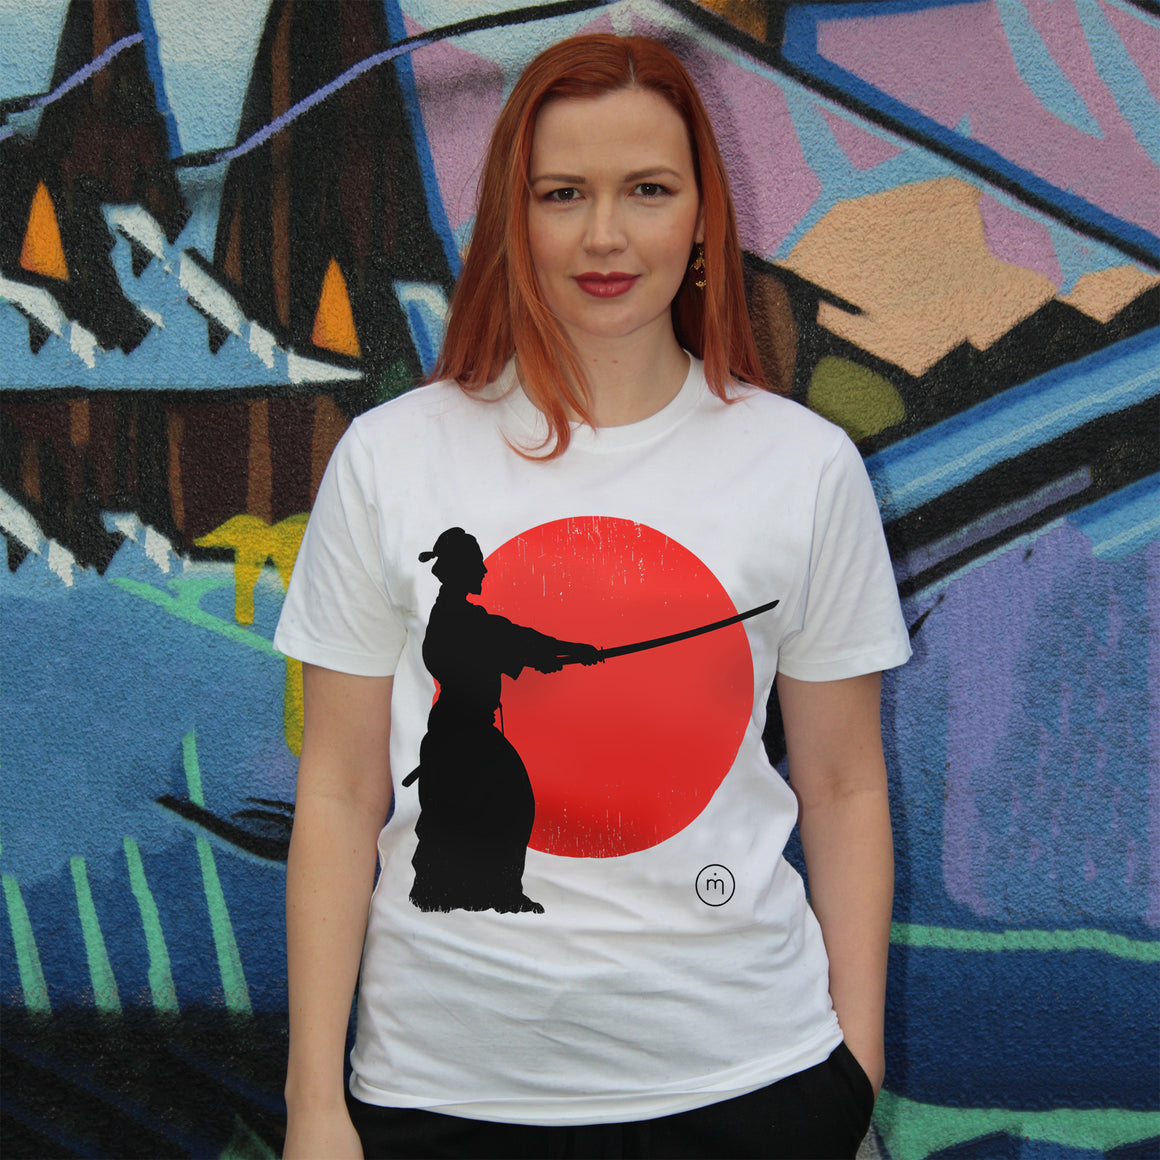 Mero Retro Samurai Sunset Fairtrade organic cotton T-shirt design - samurai silhouette against fiery sunset